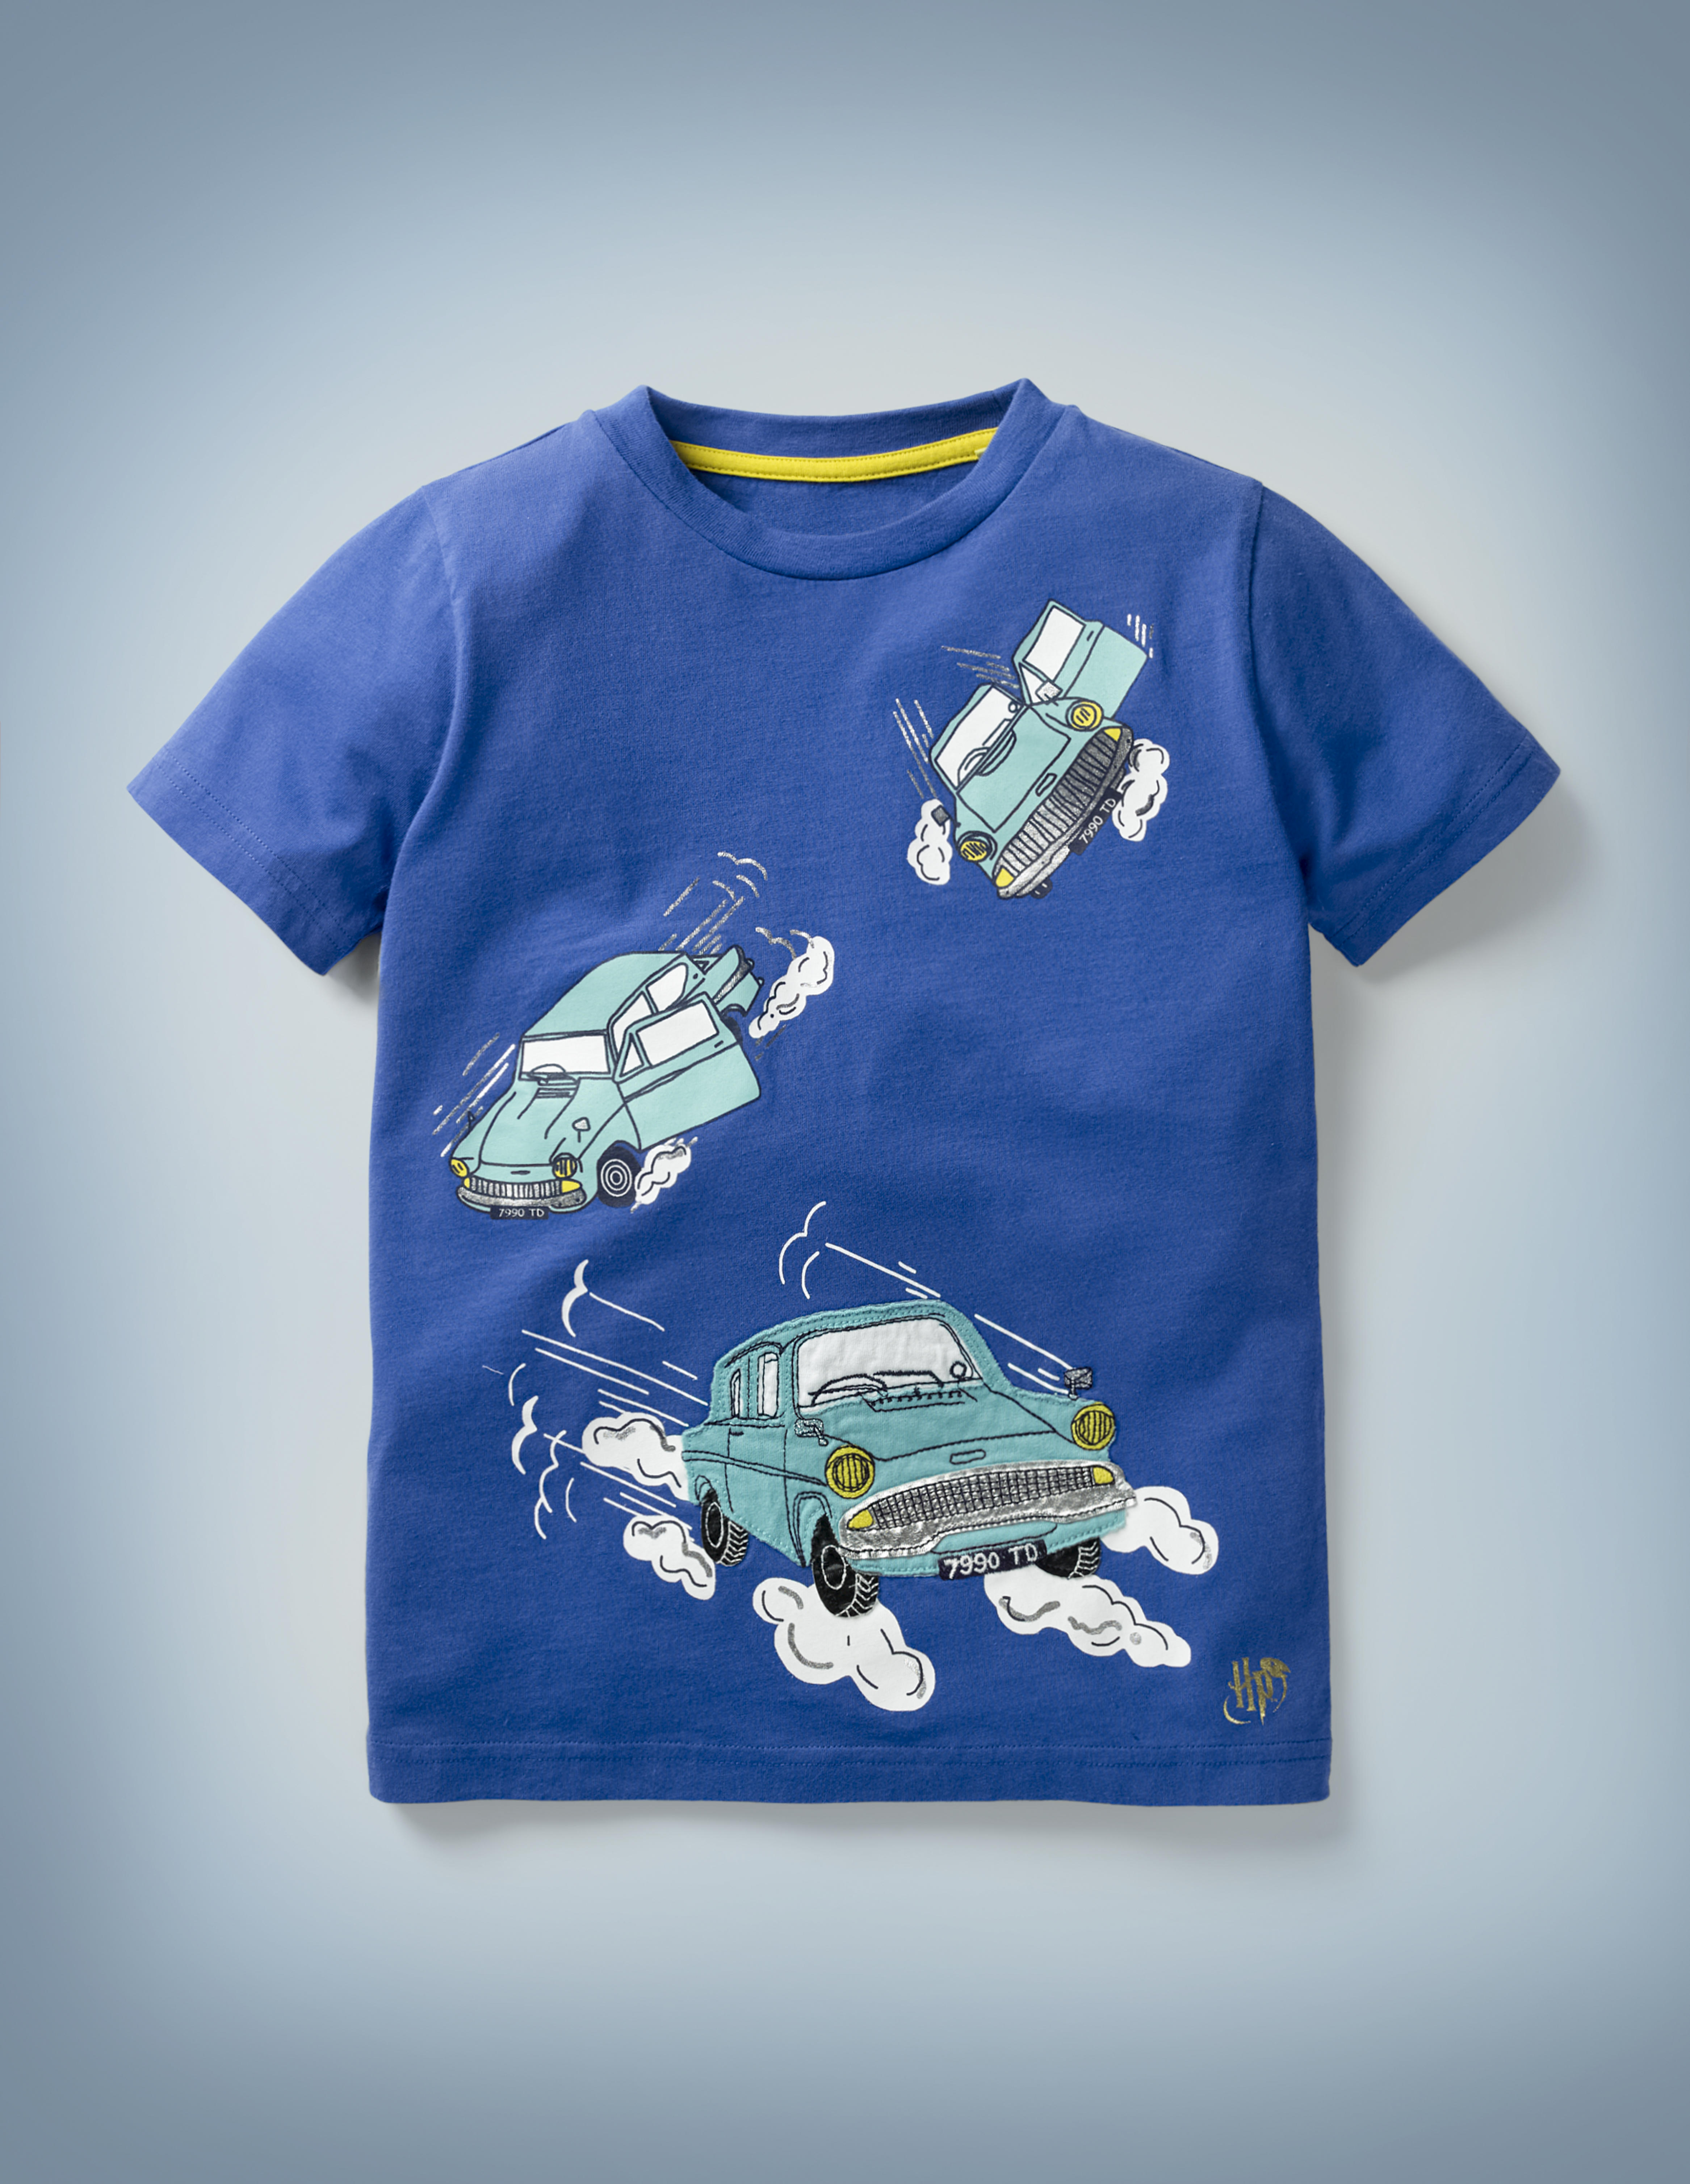 The Mini Boden Magical Transport T-shirt in blue features a fun design that includes three illustrations of Arthur Weasley's flying Ford Anglia making its way through the sky. It retails at £20.